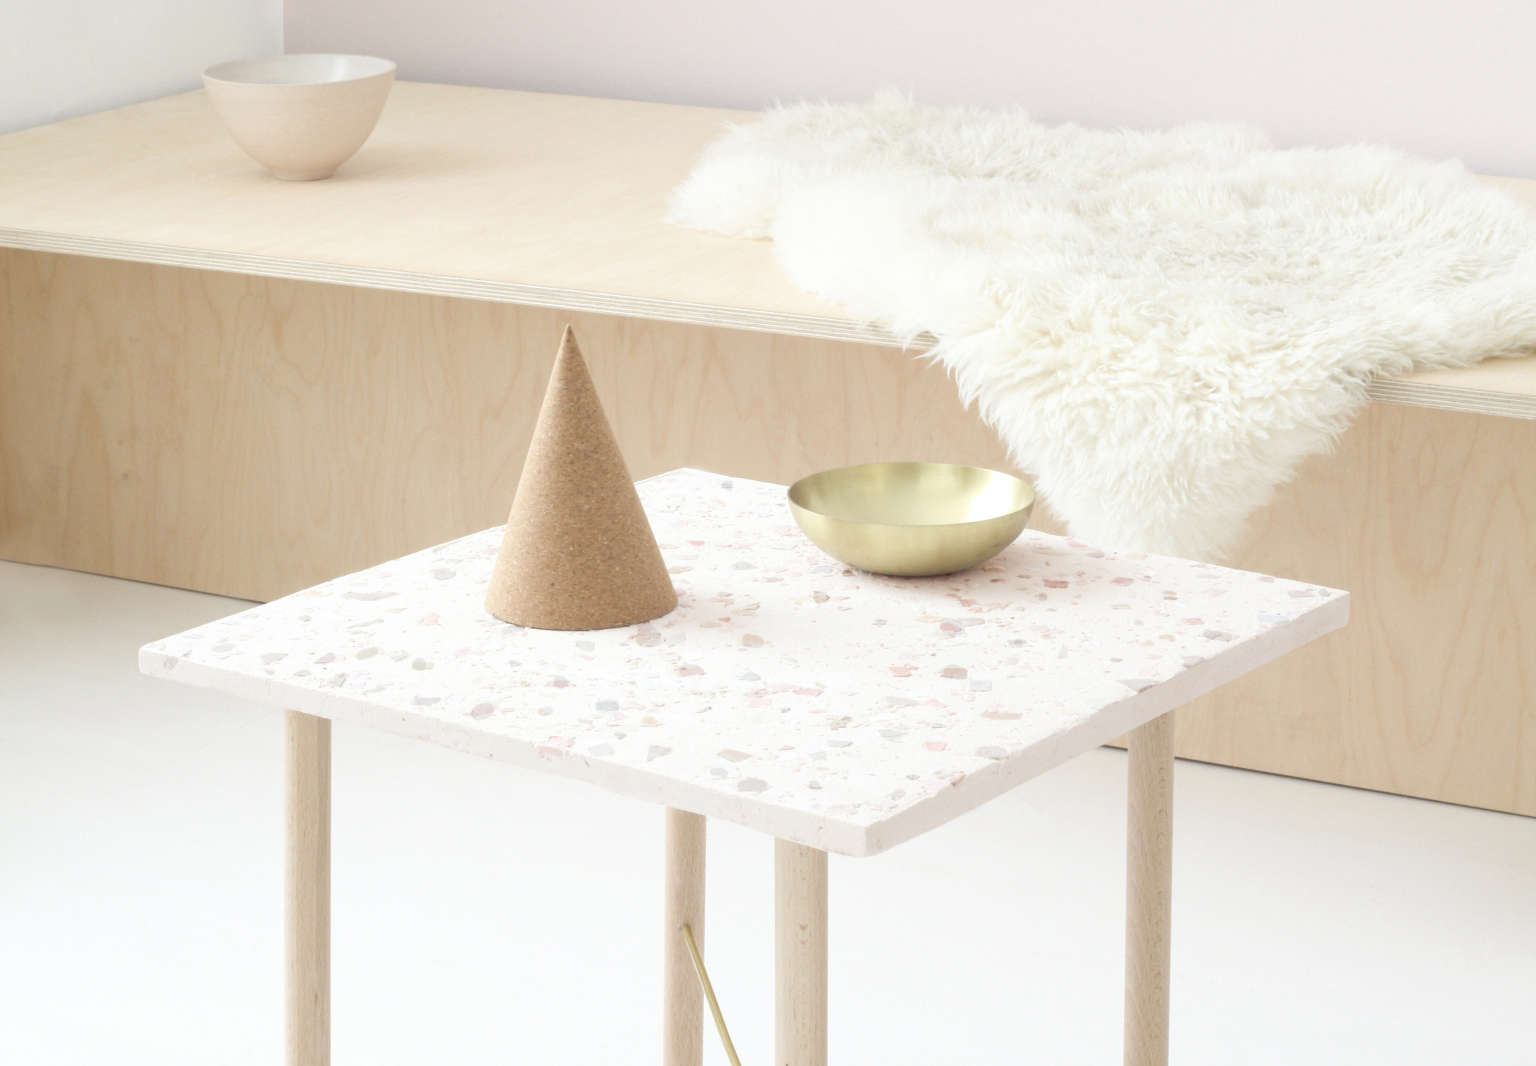 DIY: A Homemade Terrazzo Table by Heju of Paris